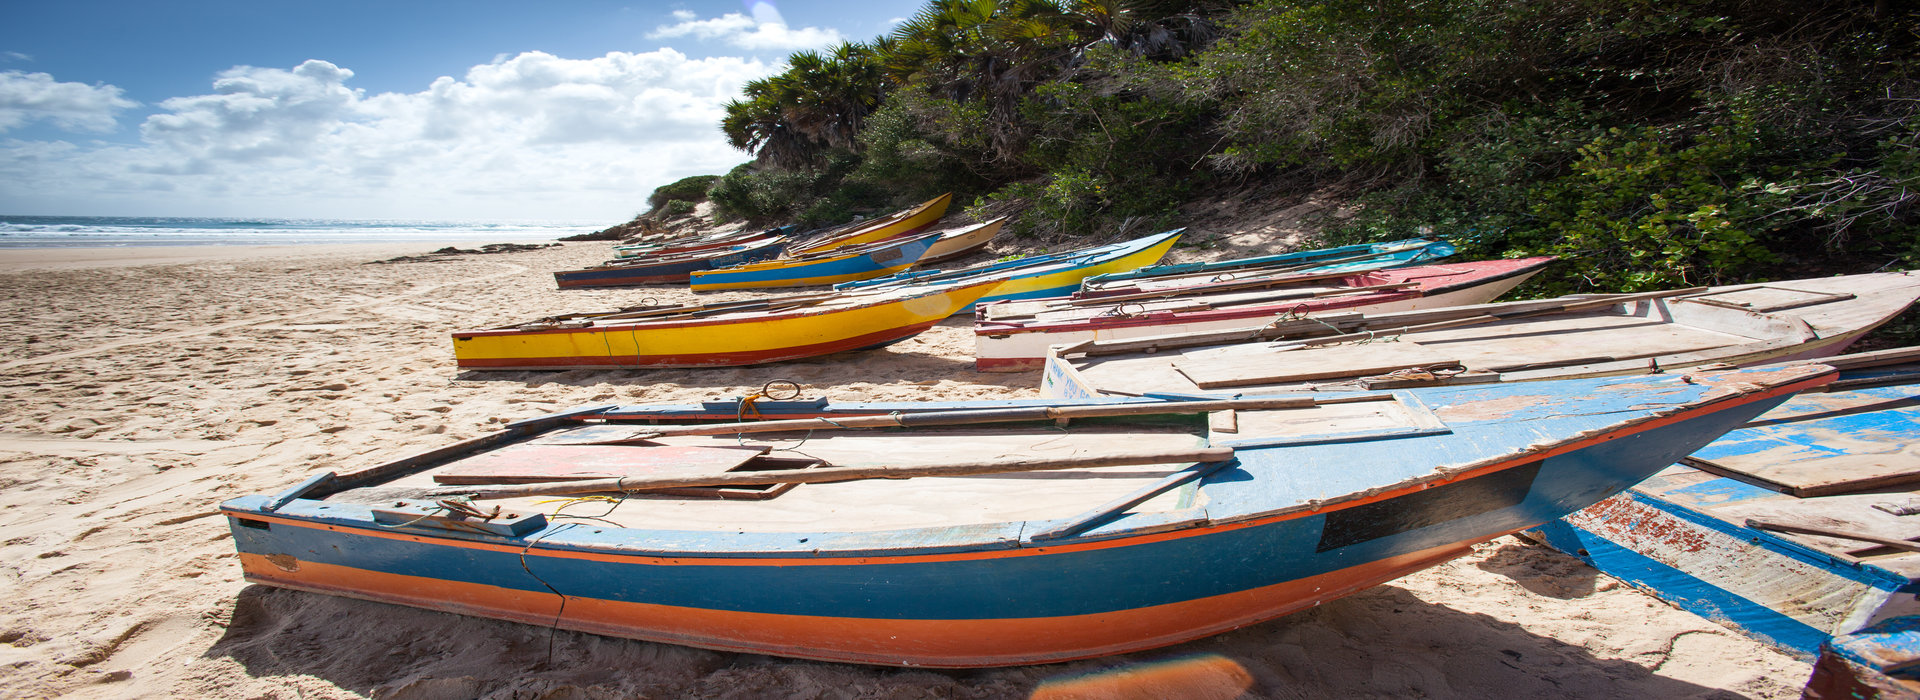 brightly_coloured_traditional_fishing_boats_landed_on_the_white_sandy_beach_on_the_coast_of_tofo_mozambique